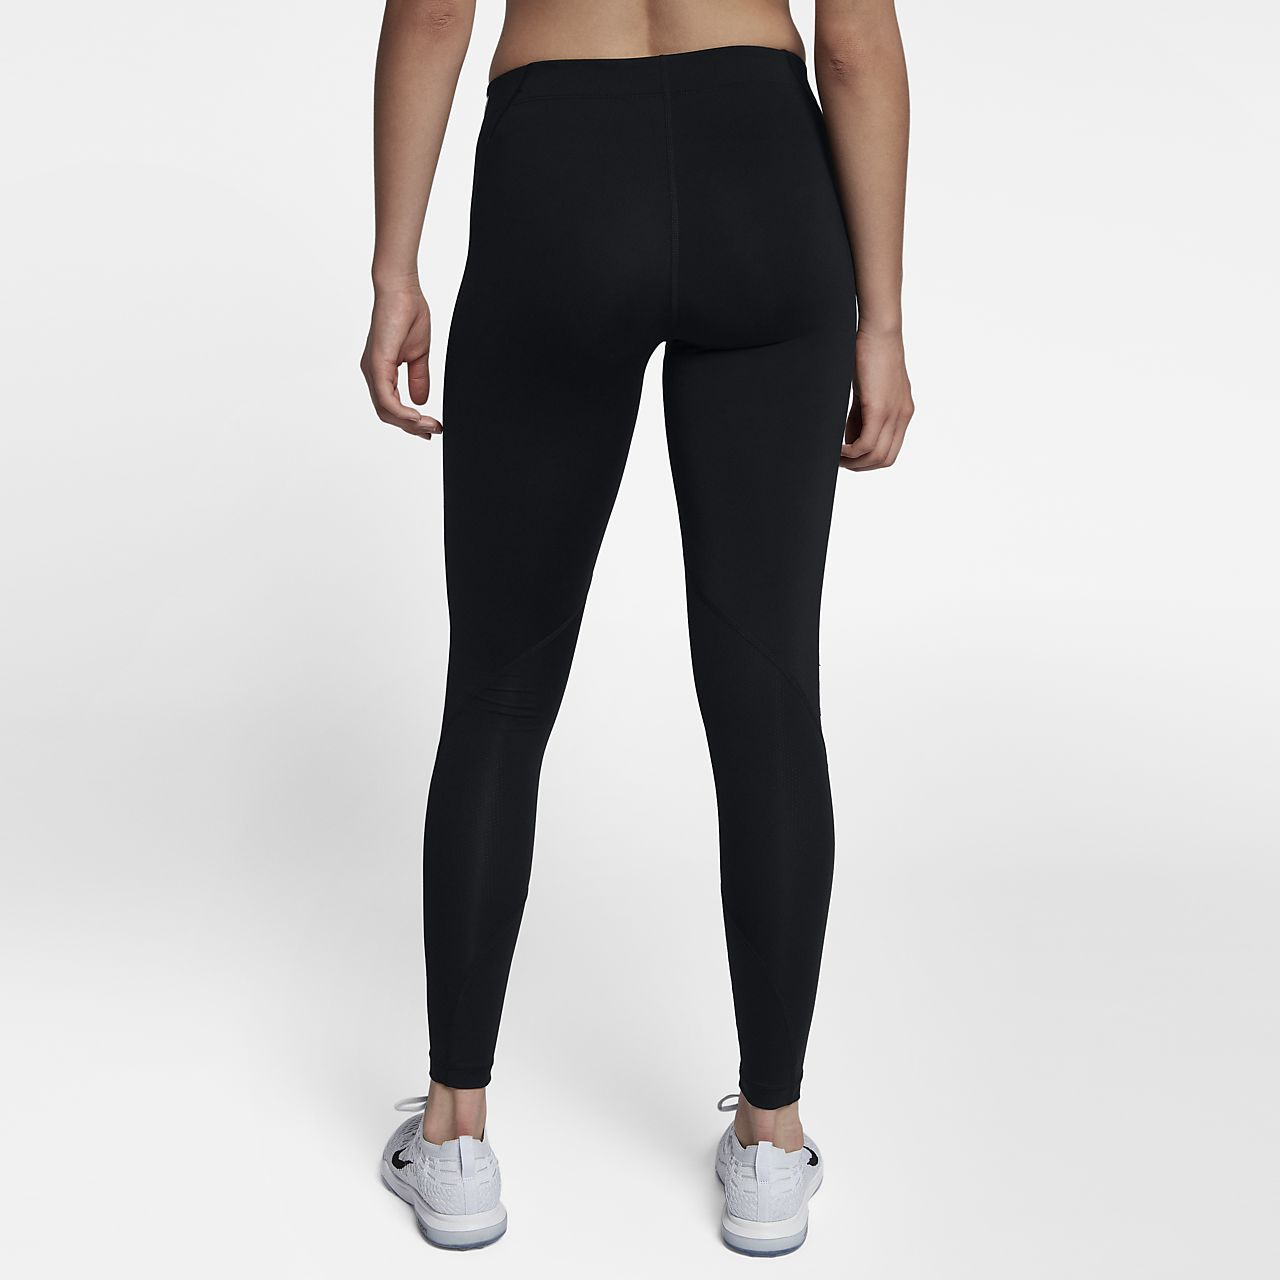 8c4ab202f Nike Pro Women s Mid-Rise Training Tights. Nike.com